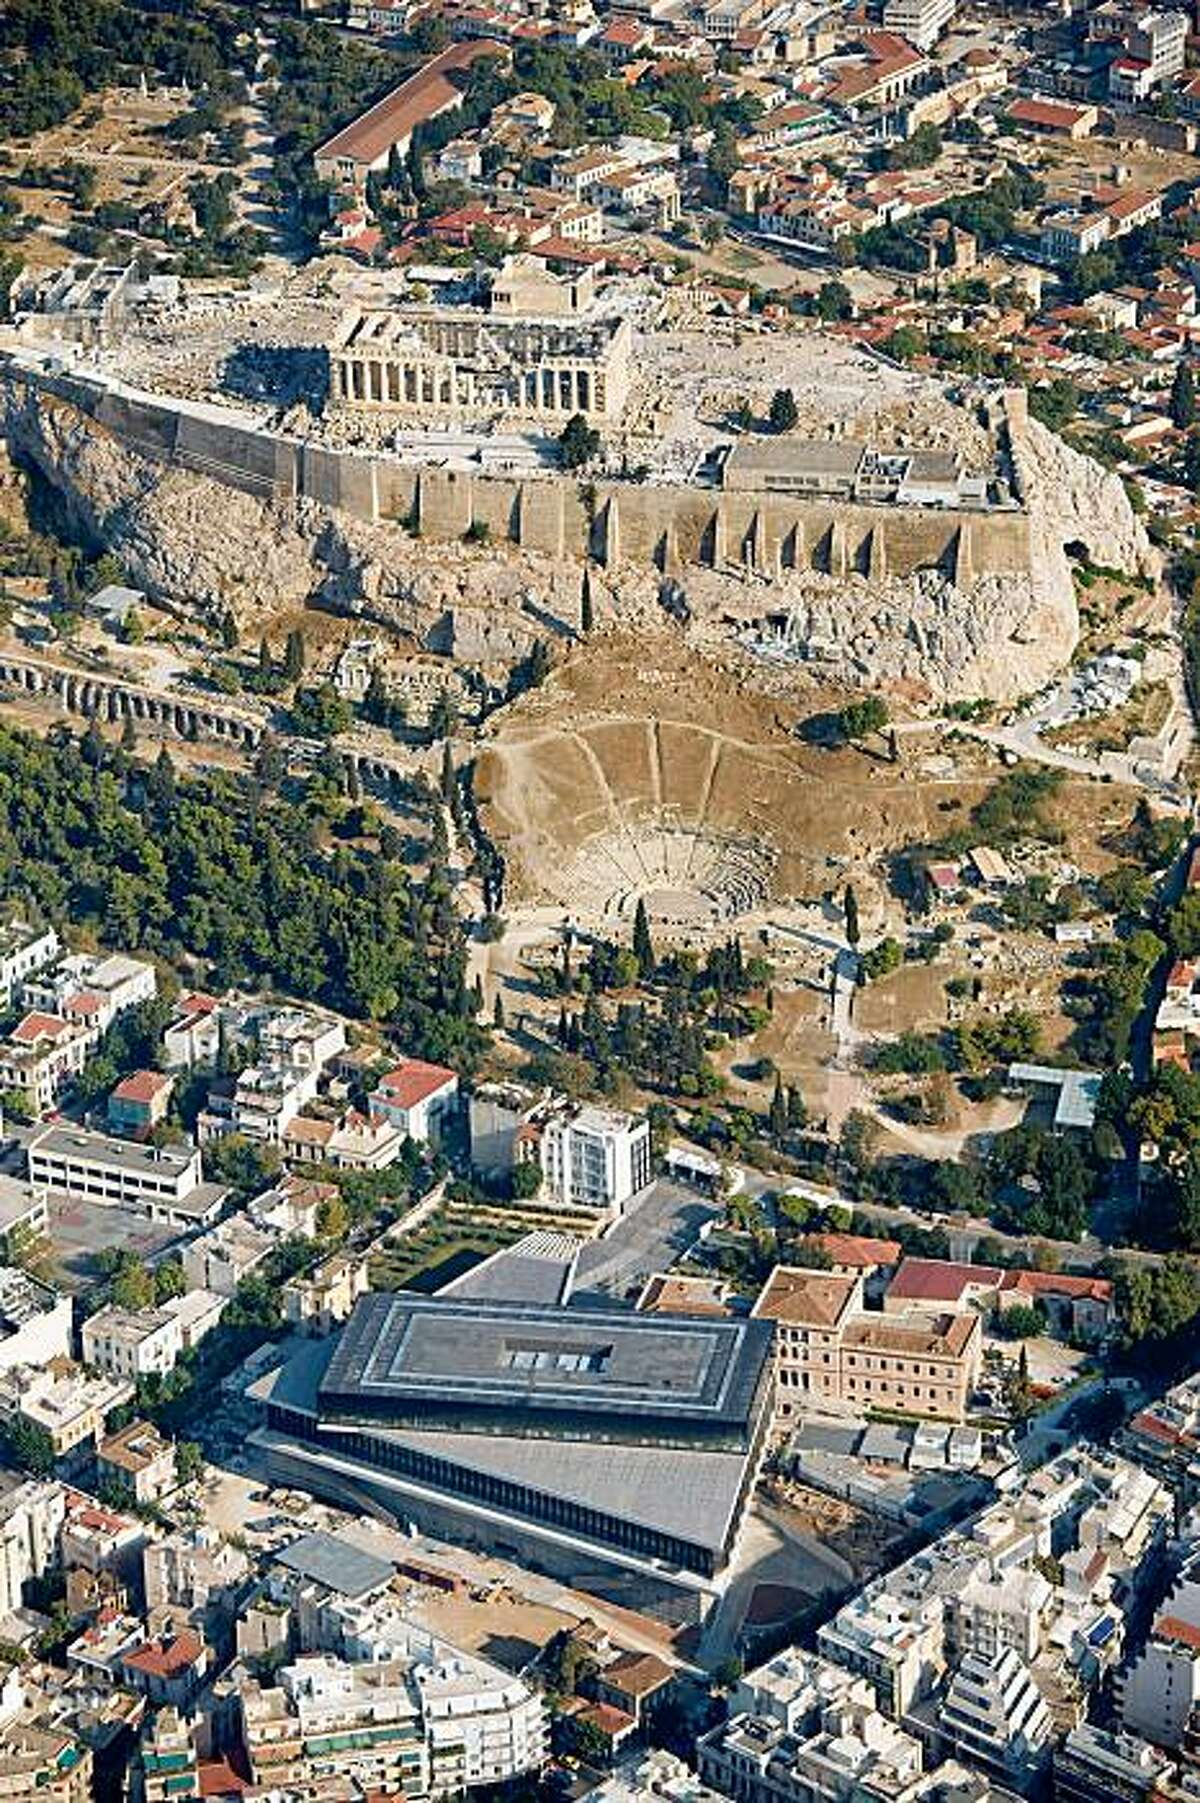 Aerial view of the New Acropolis Museum, Athens, Greece, designed by Bernard Tschumi, showing relationship to the Acropolis and Parthenon.